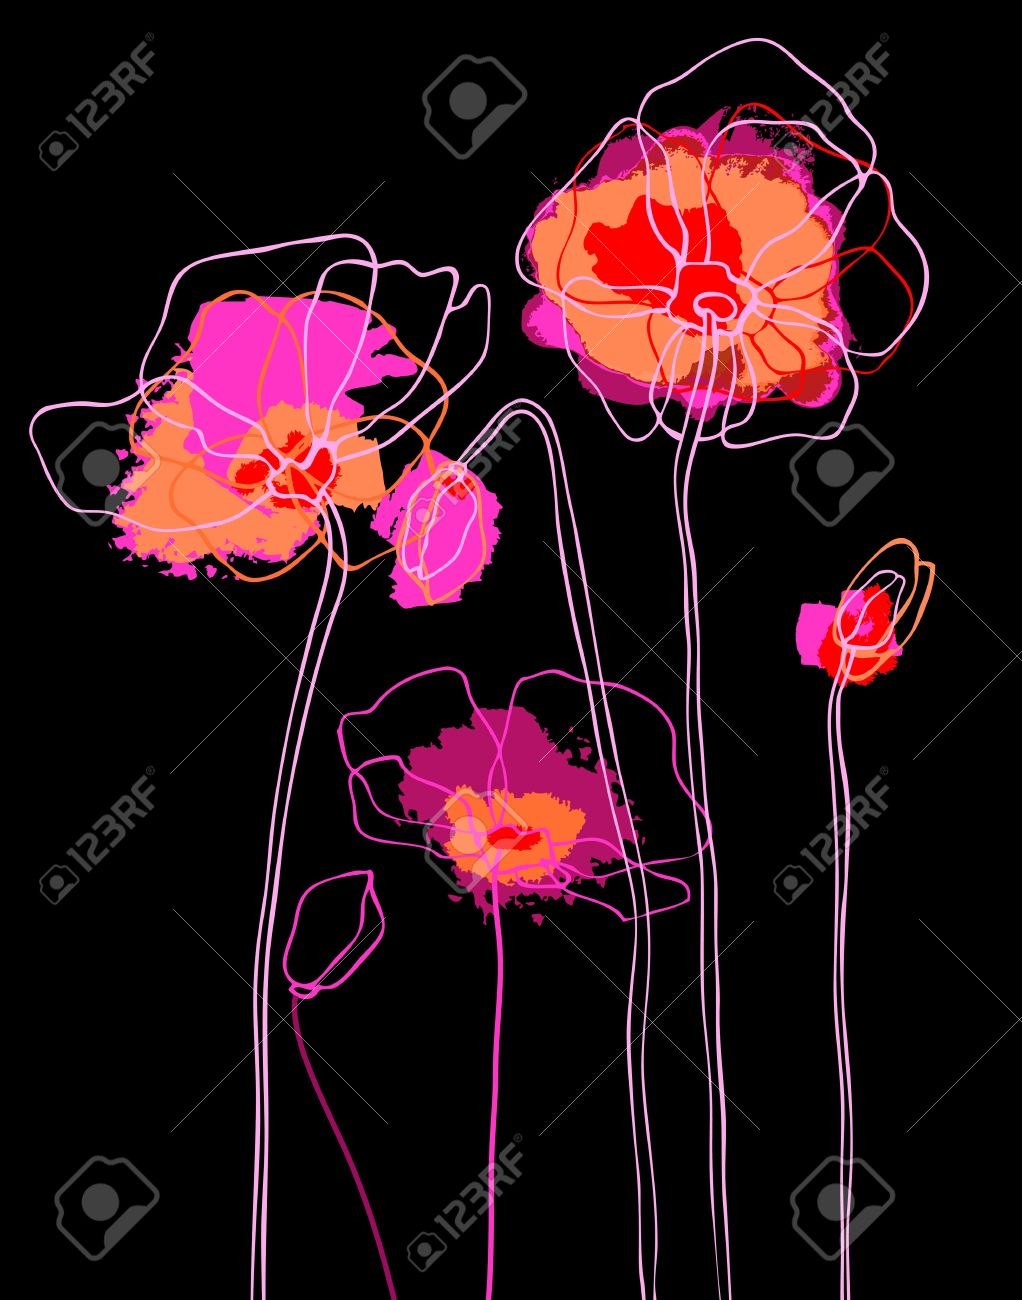 Pink  poppies on a black background Stock Vector - 12486688